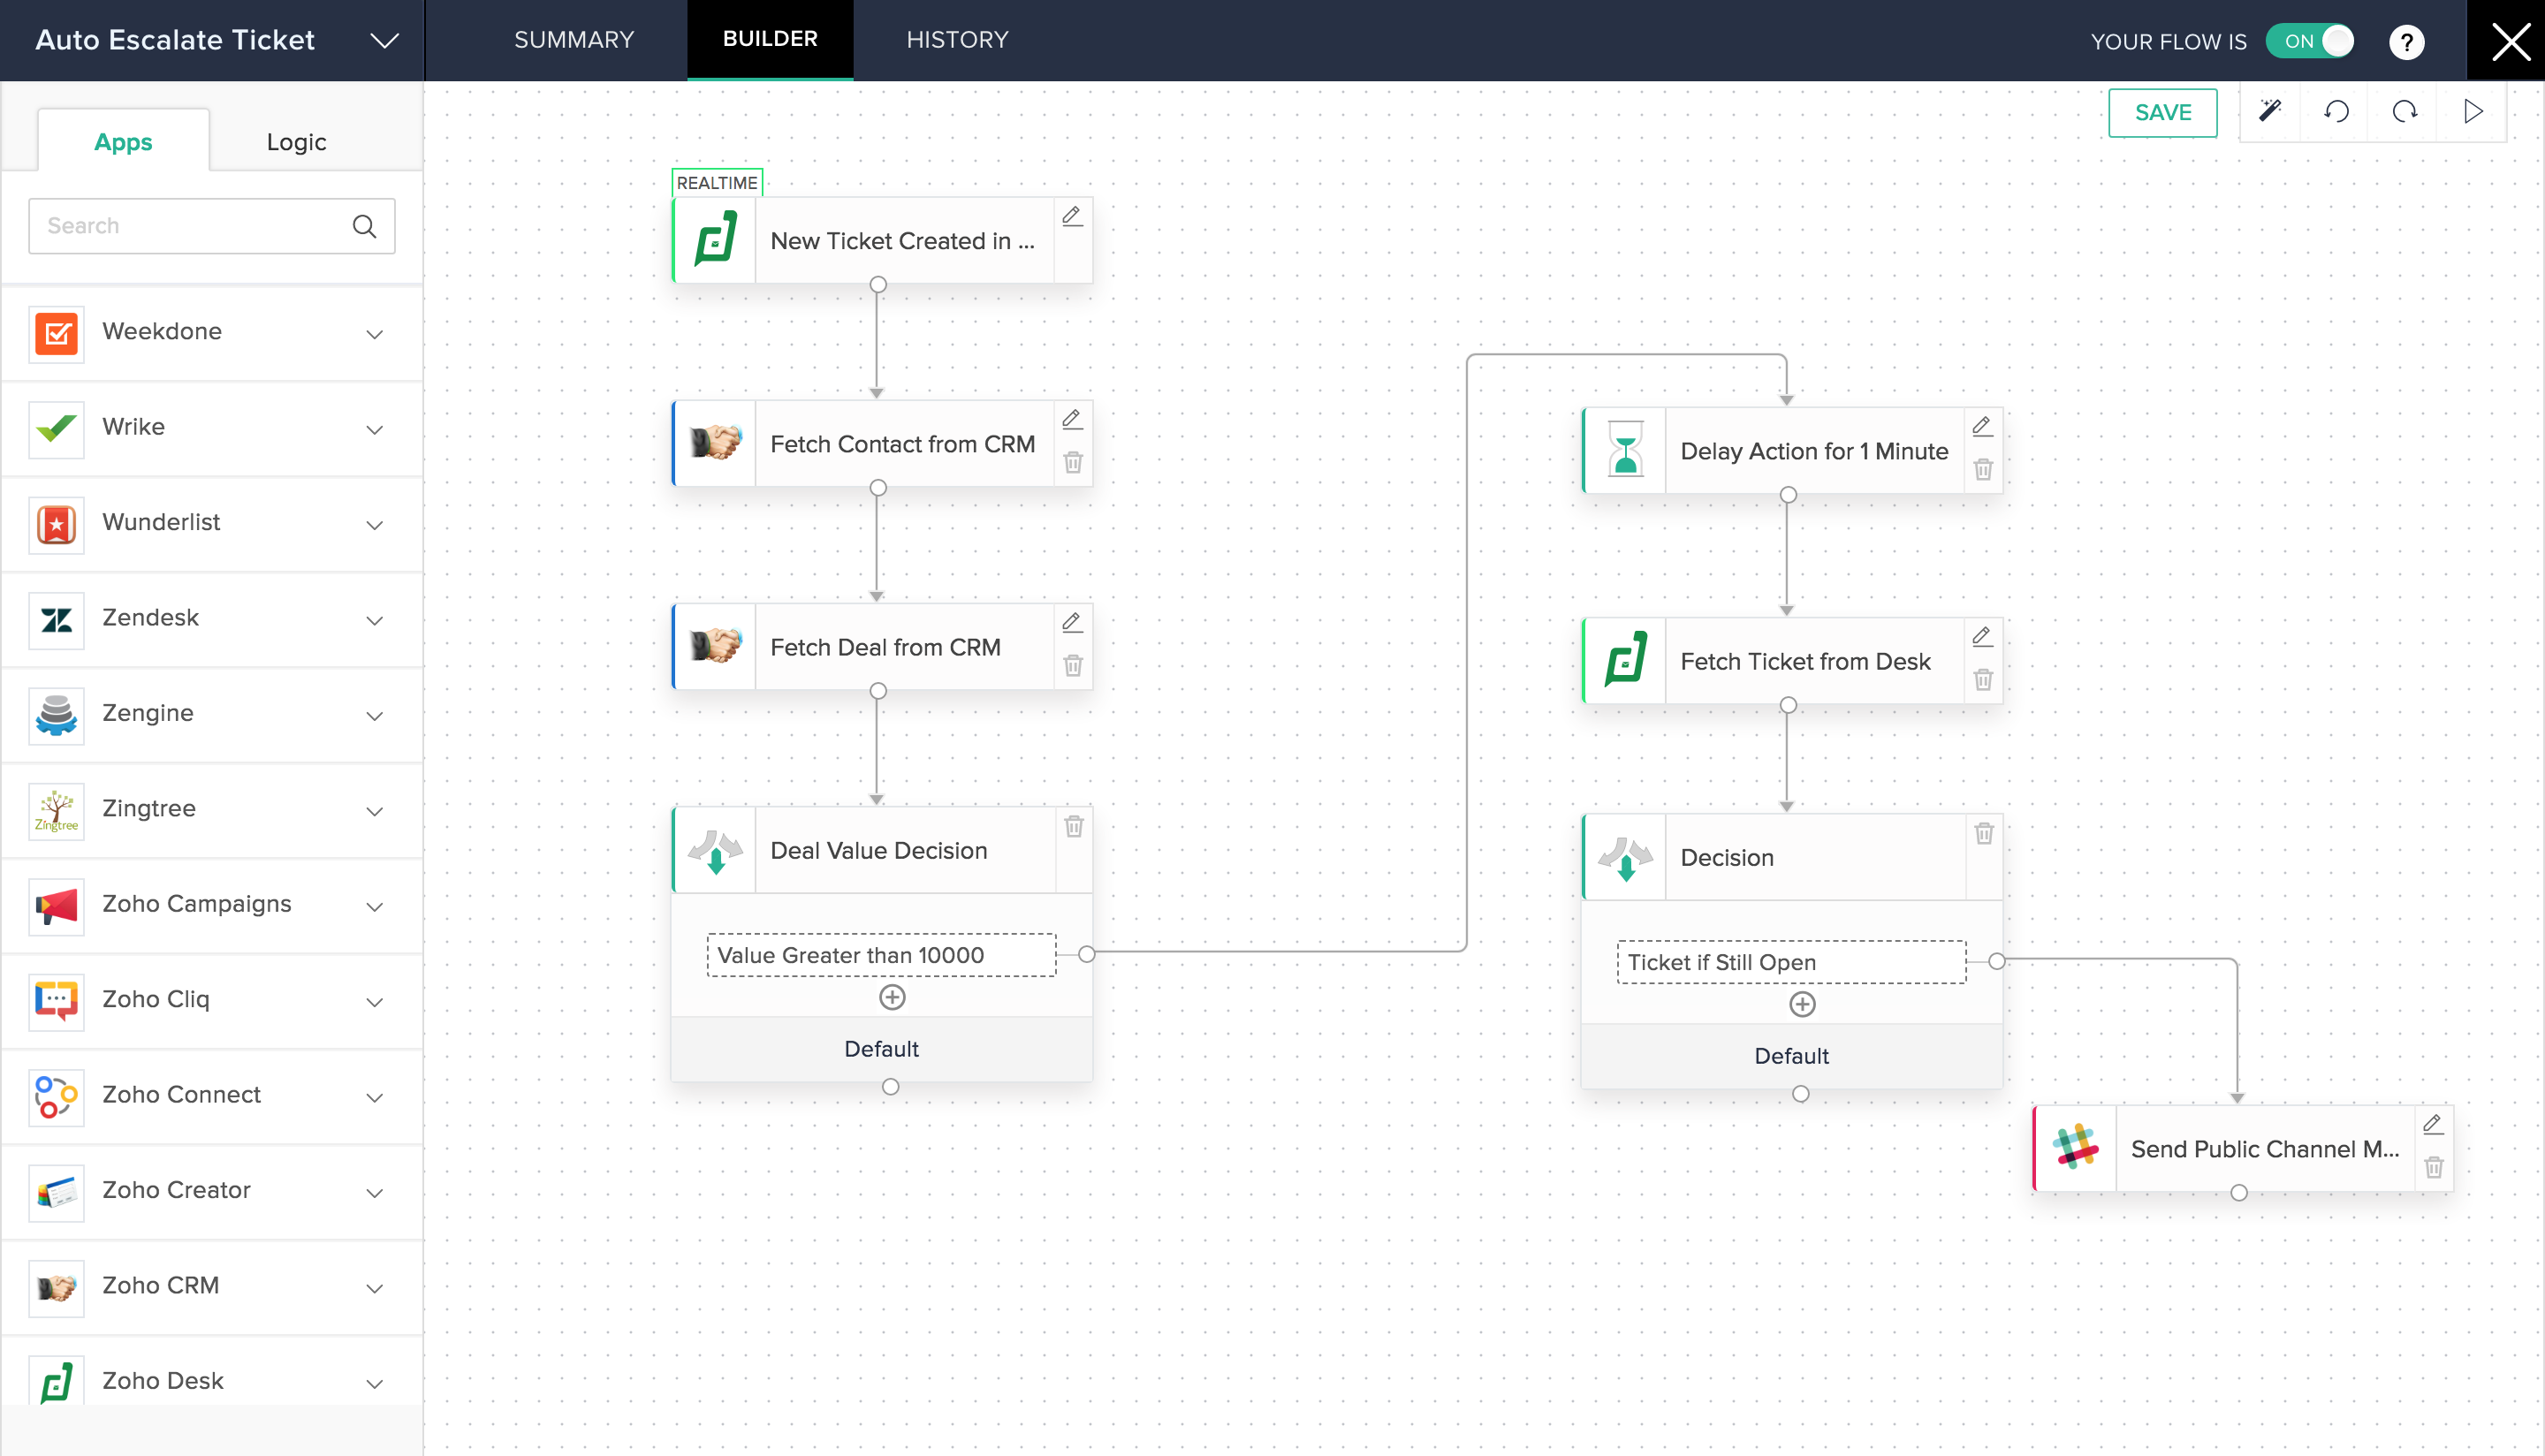 Example of a comprehensive workflow on Zoho Flow